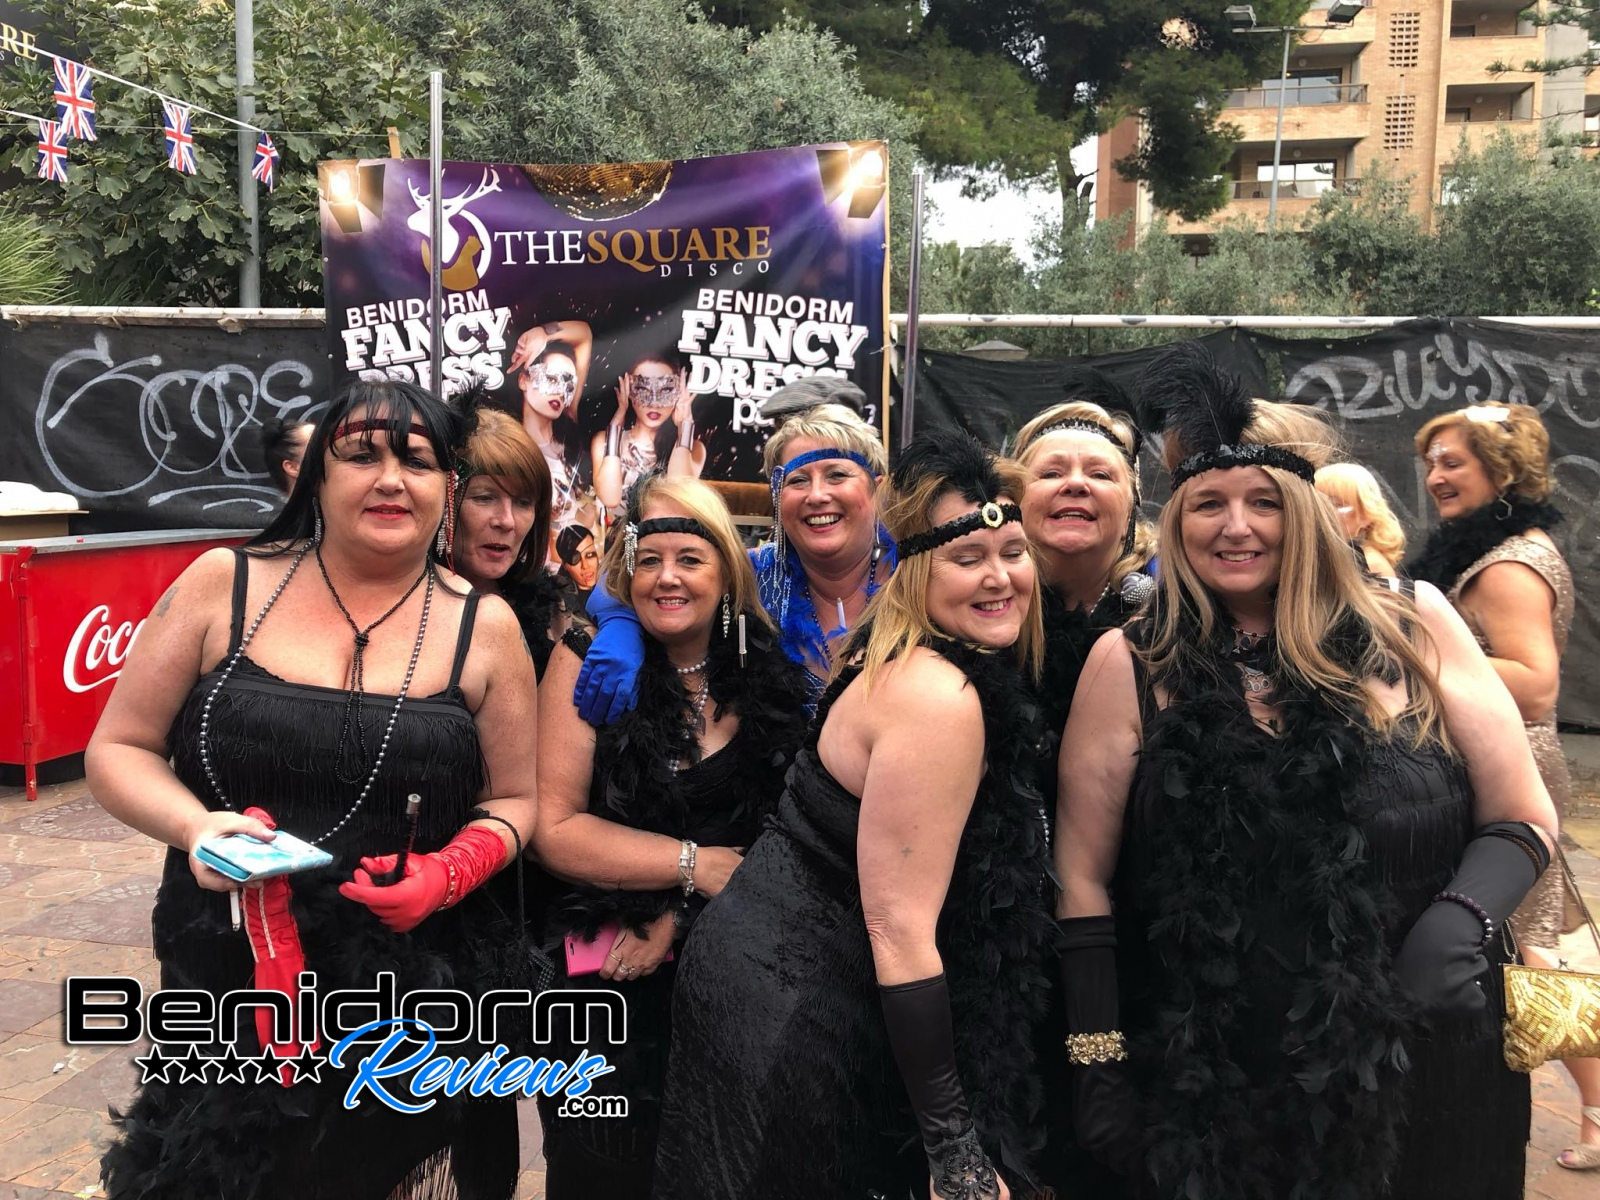 Benidorm-Fiestas-2019-Fancy-Dress-188